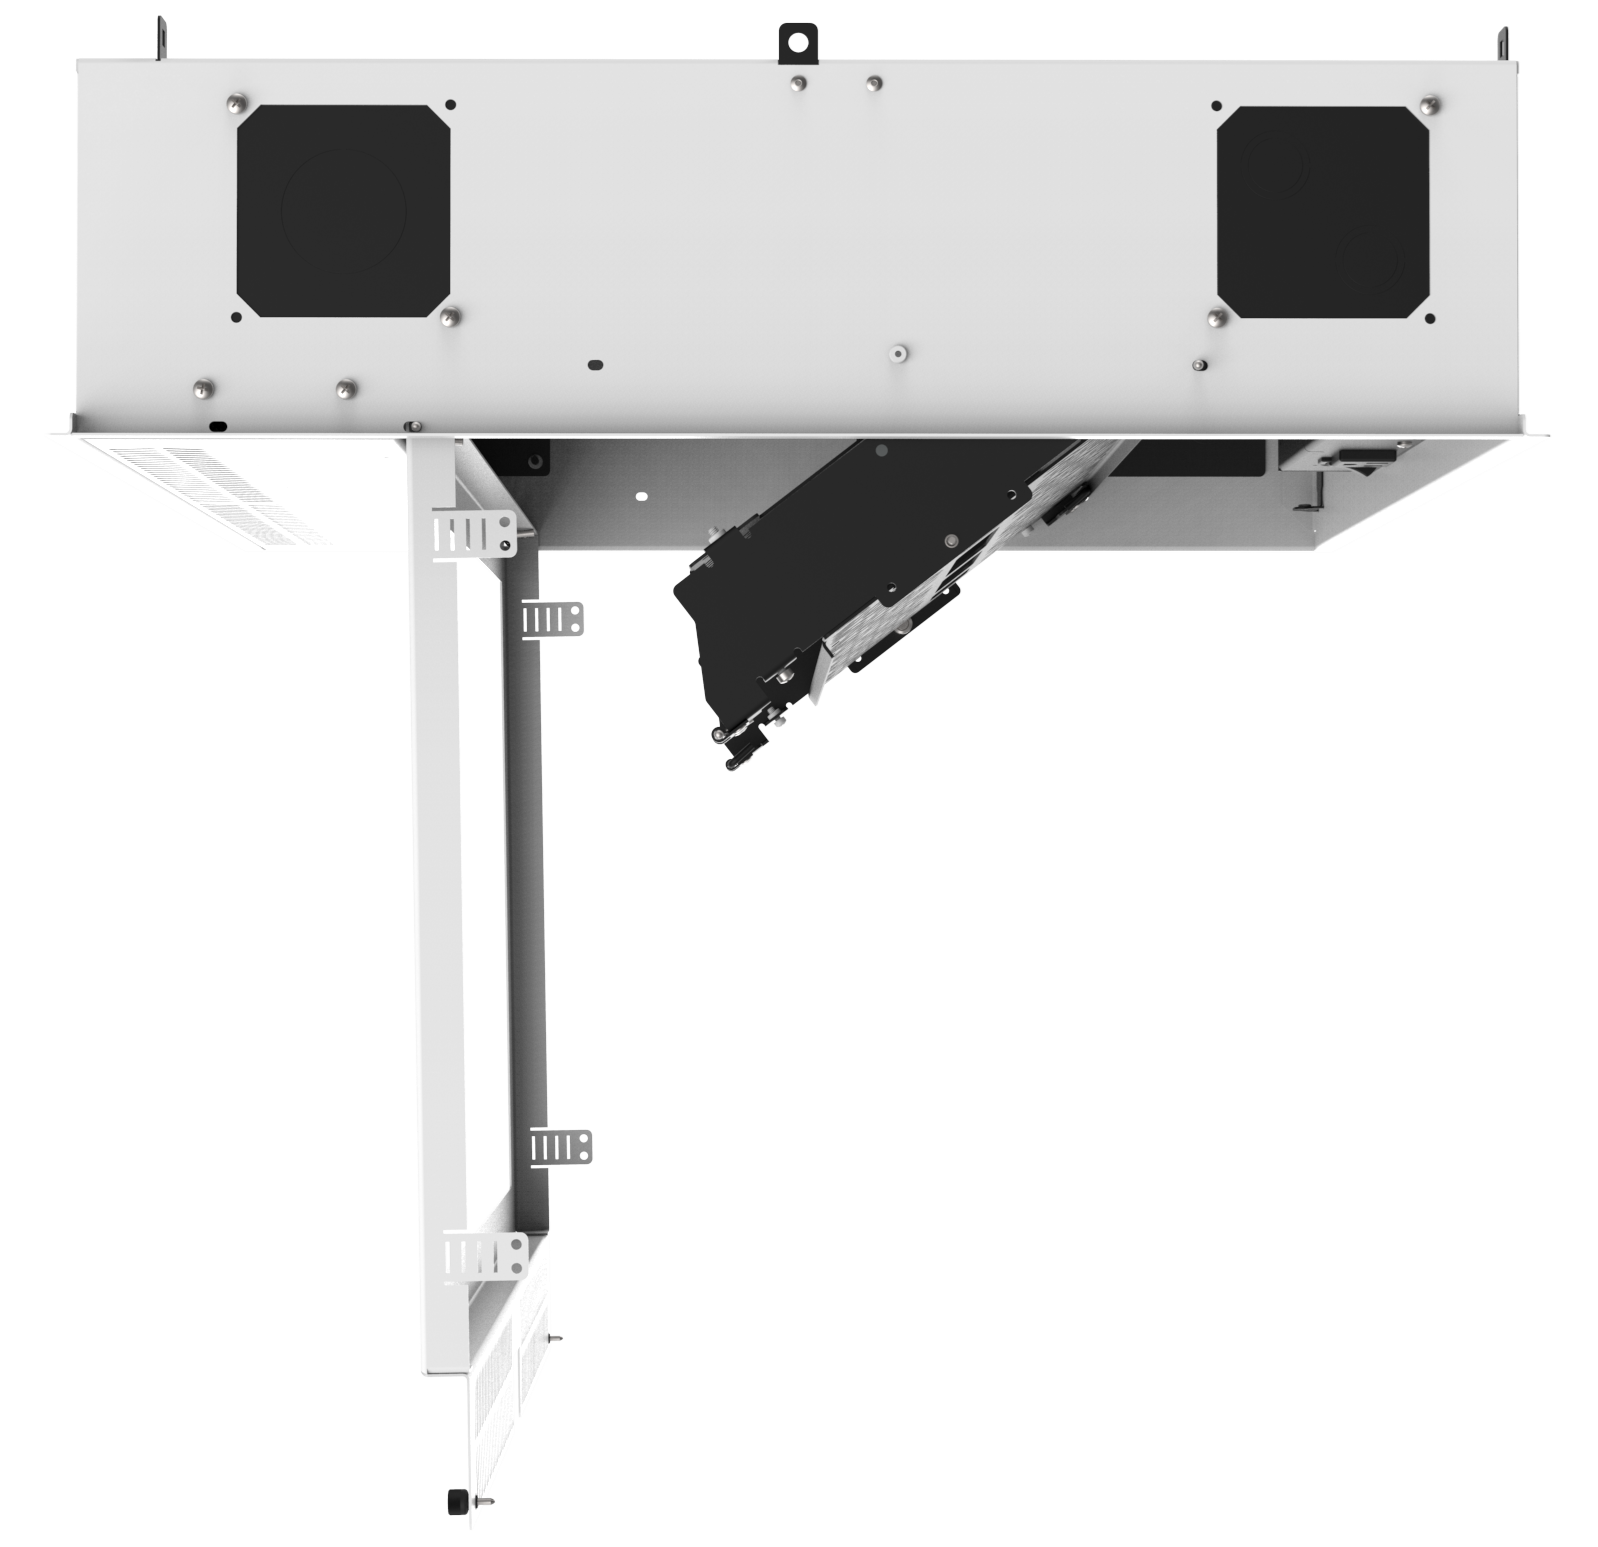 Atlasied Cr222p Concealed Ceiling Rack For 19 Quot Equipment